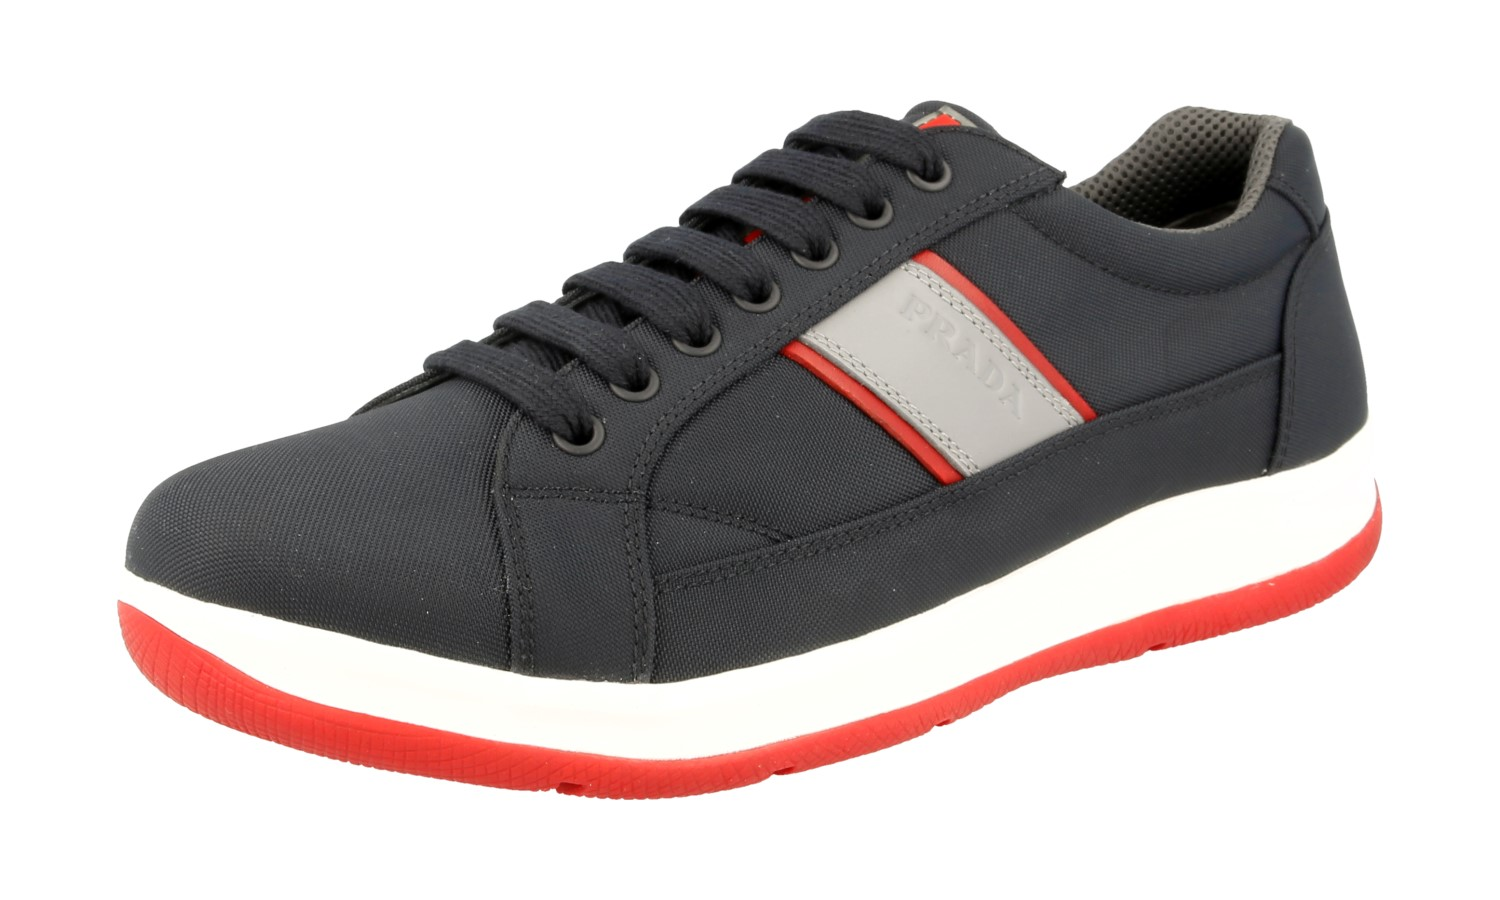 caff97aa3cef Details about AUTHENTIC LUXURY PRADA SNEAKERS SHOES 4E2987 BLUE RED NEW US  9 EU 42 42